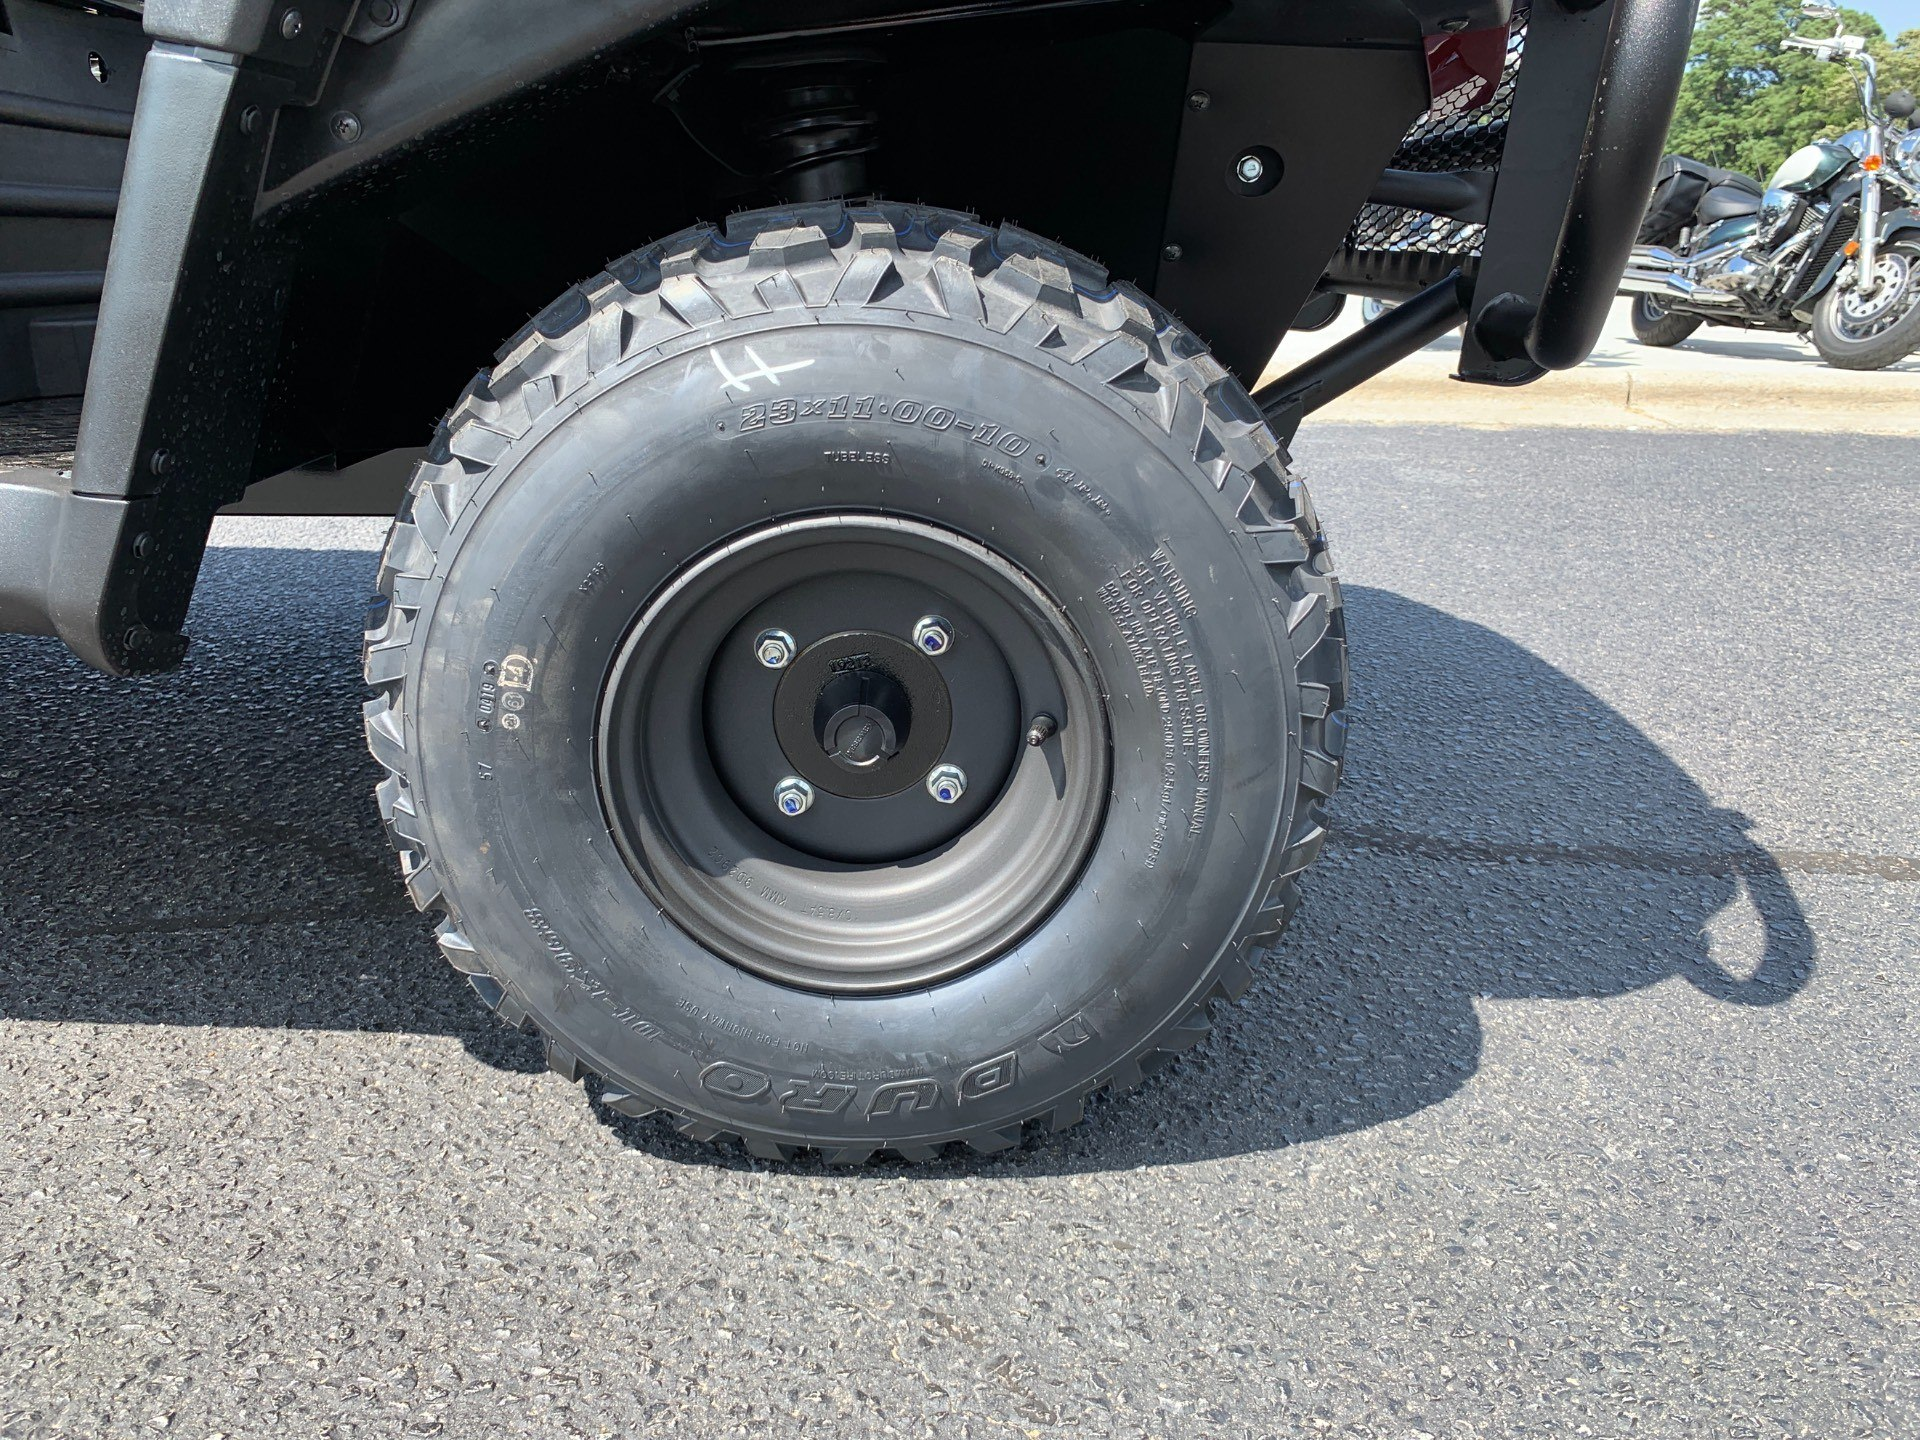 2020 Kawasaki Mule 4010 4x4 in Greenville, North Carolina - Photo 12